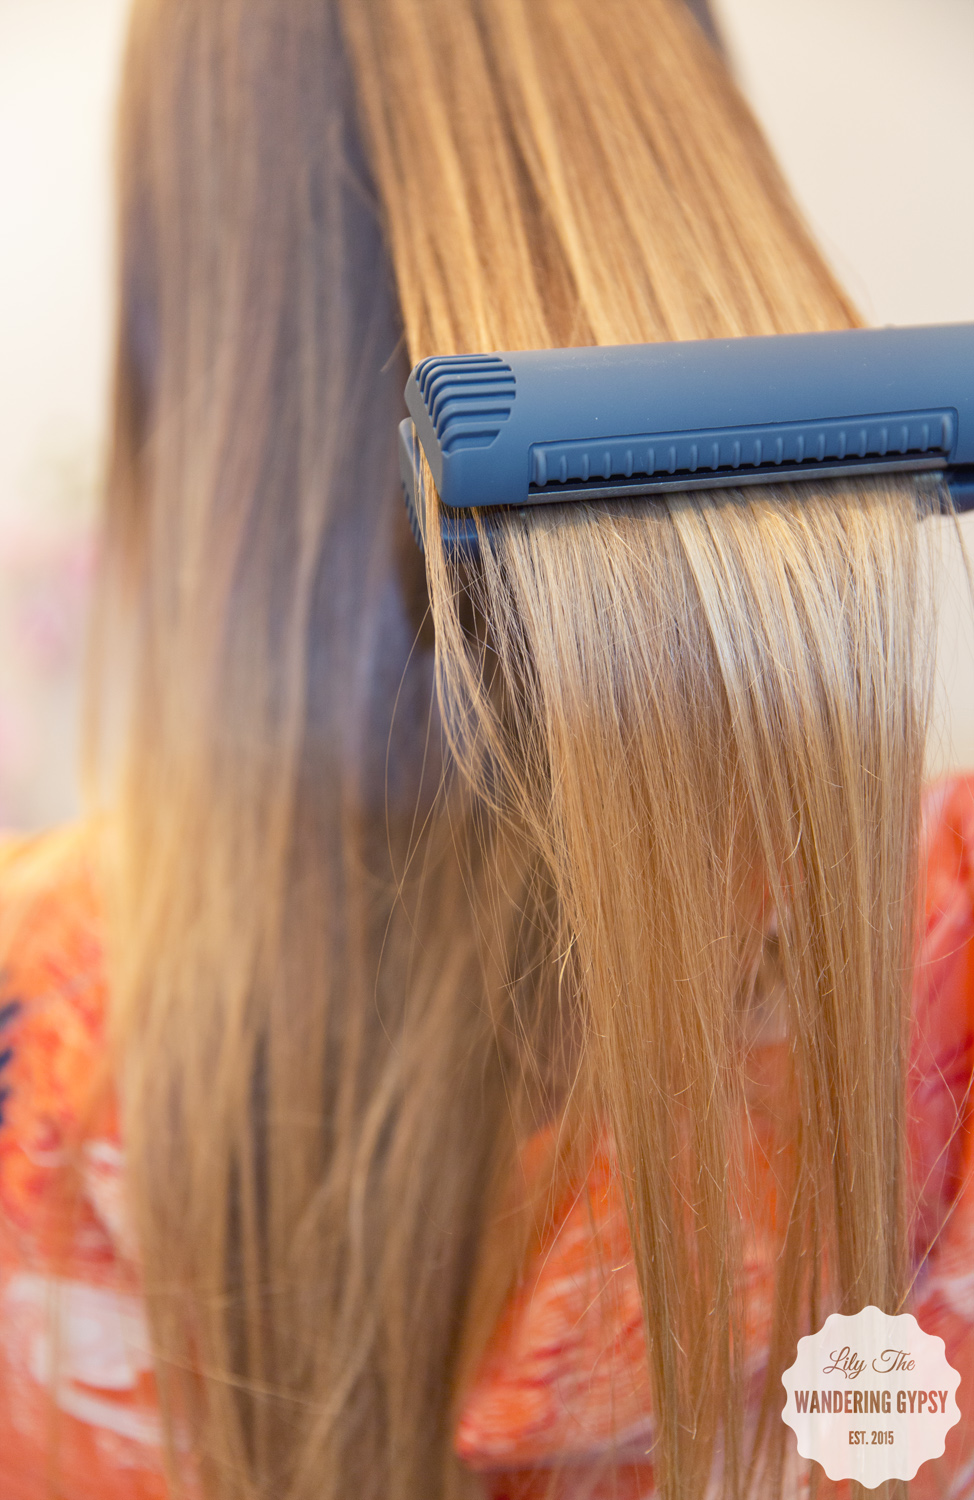 Check Out This Flat Iron!